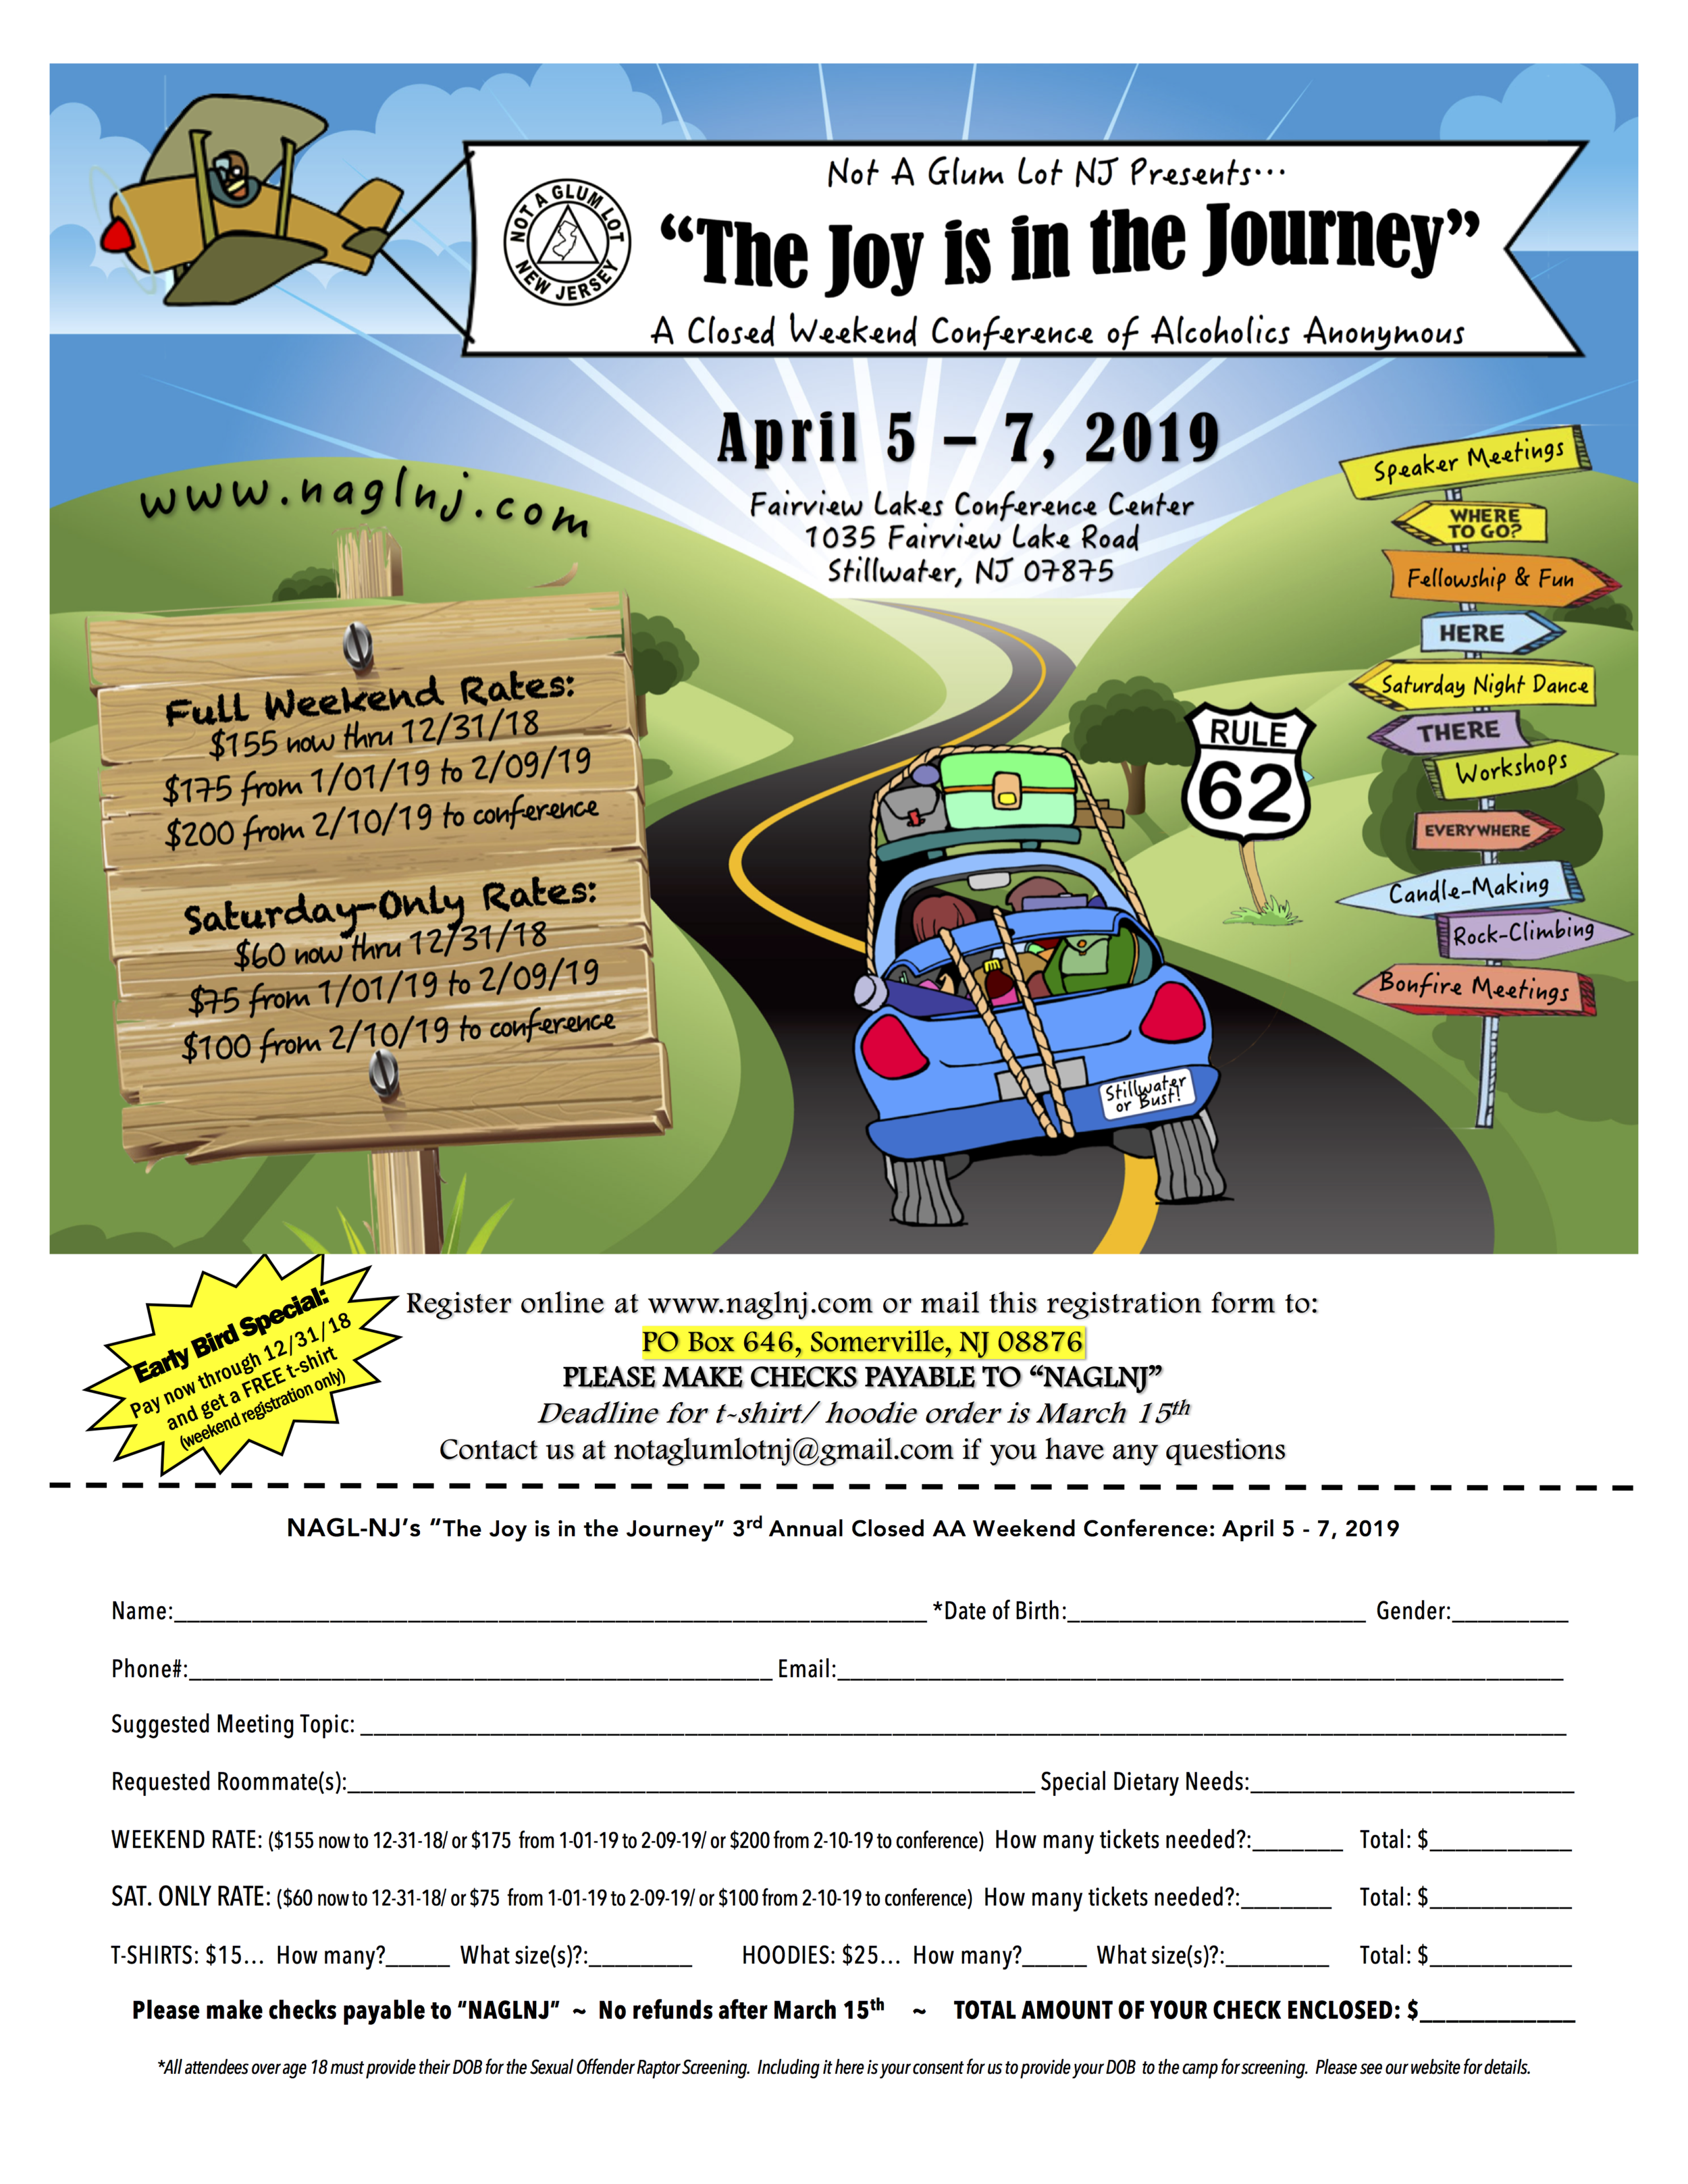 NAGL-NJ Conference Flyer 2019.png